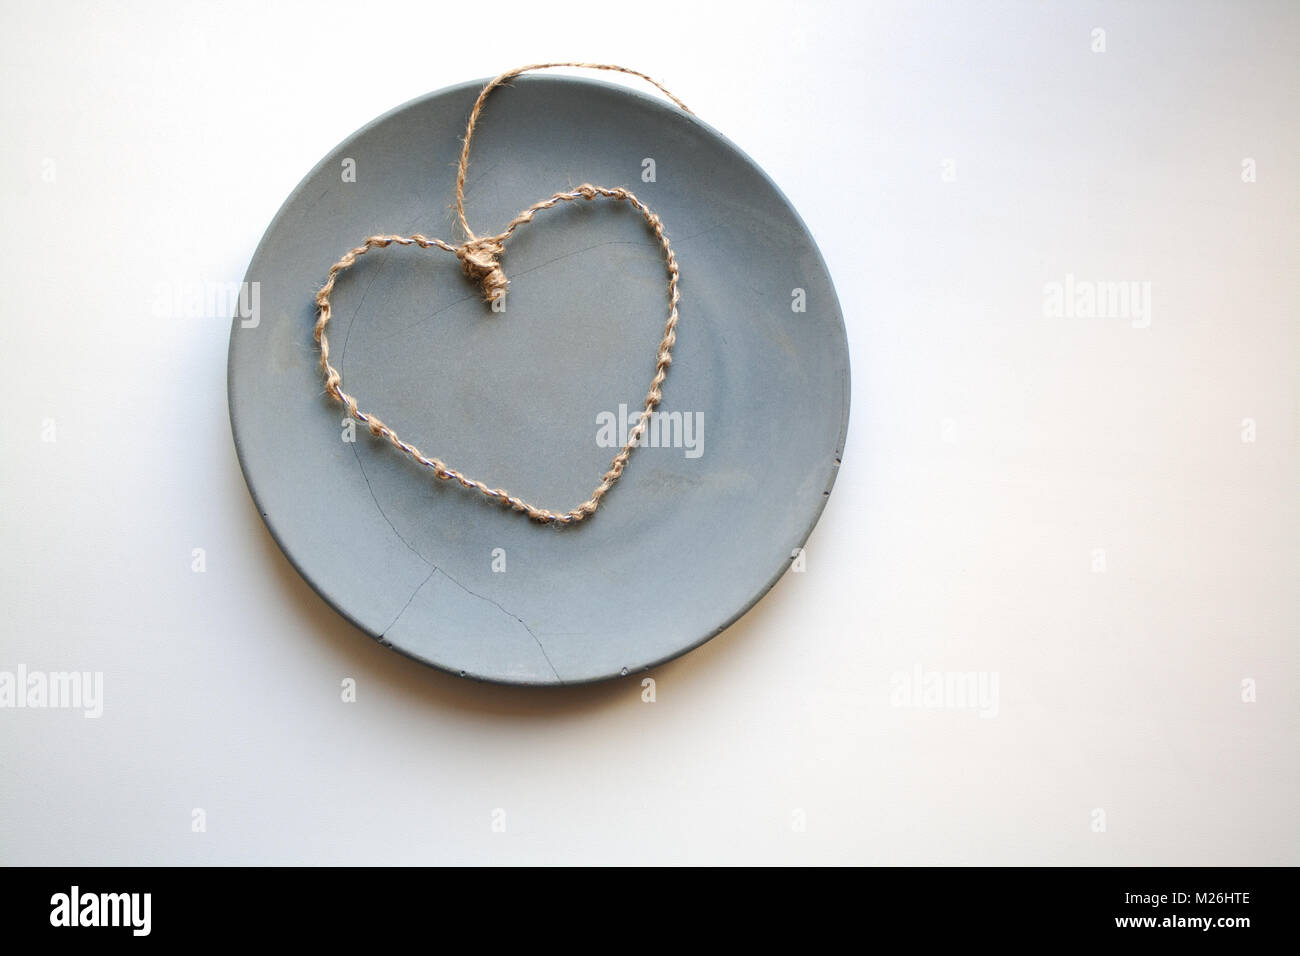 Wire Crafts Stock Photos & Wire Crafts Stock Images - Alamy